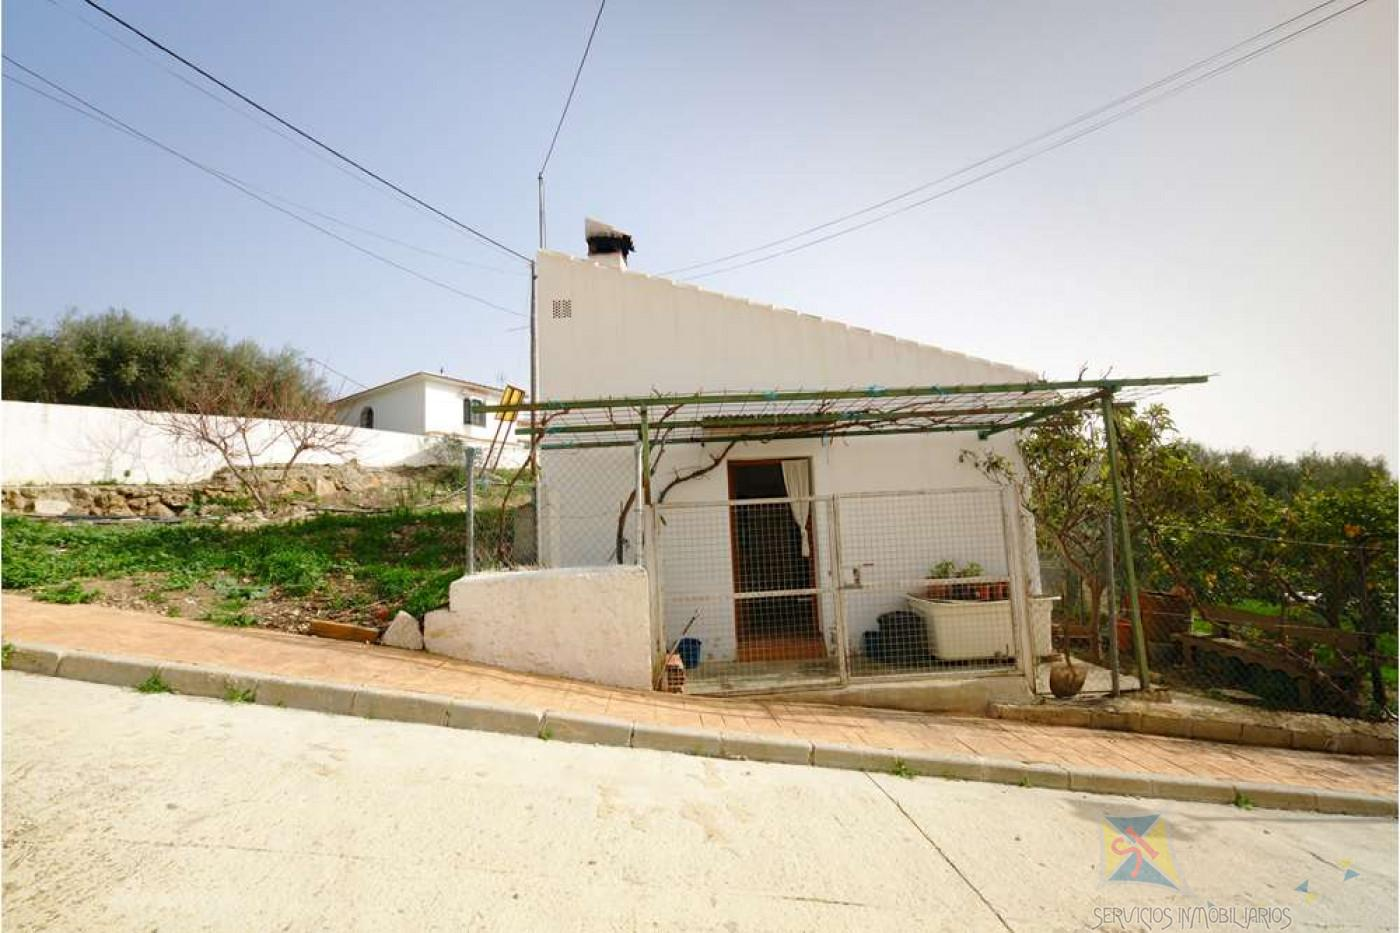 For sale of land in Periana